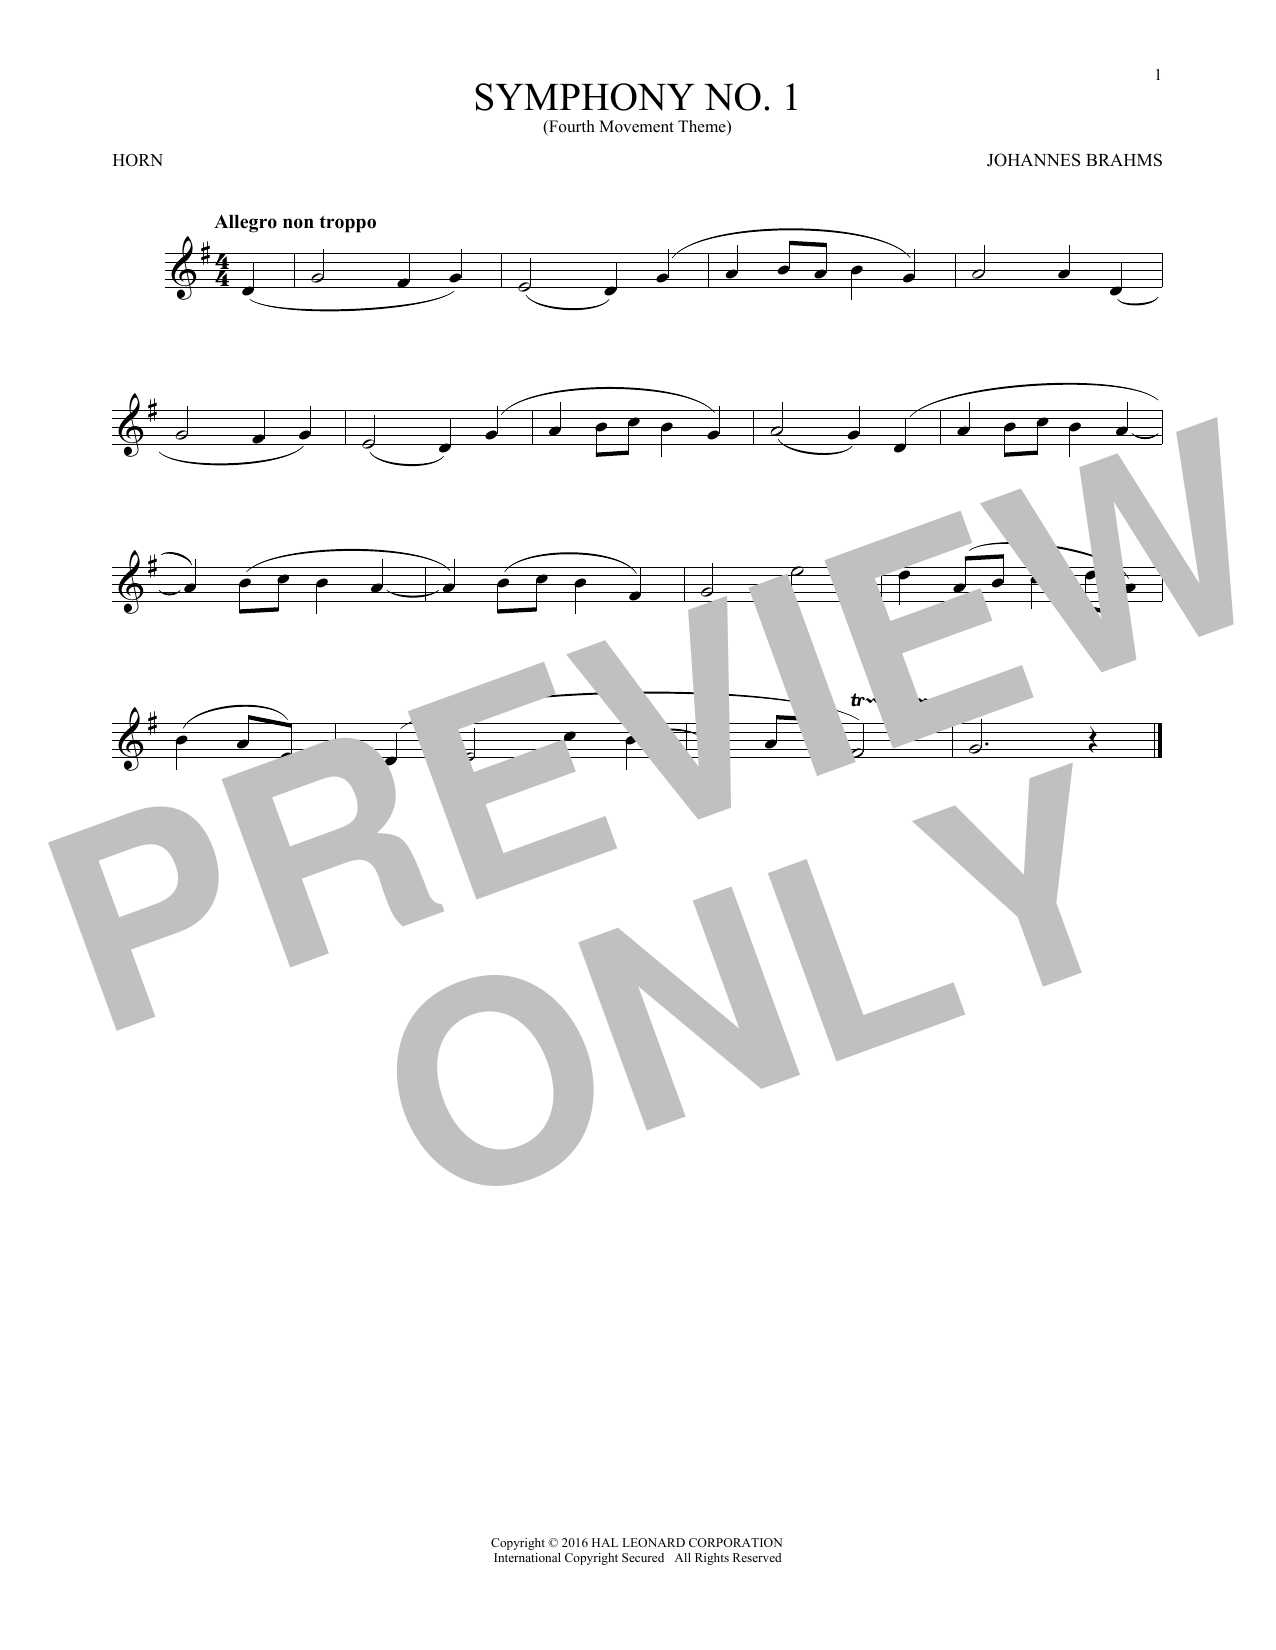 Symphony No. 1 In C Minor, Fourth Movement Excerpt (French Horn Solo)